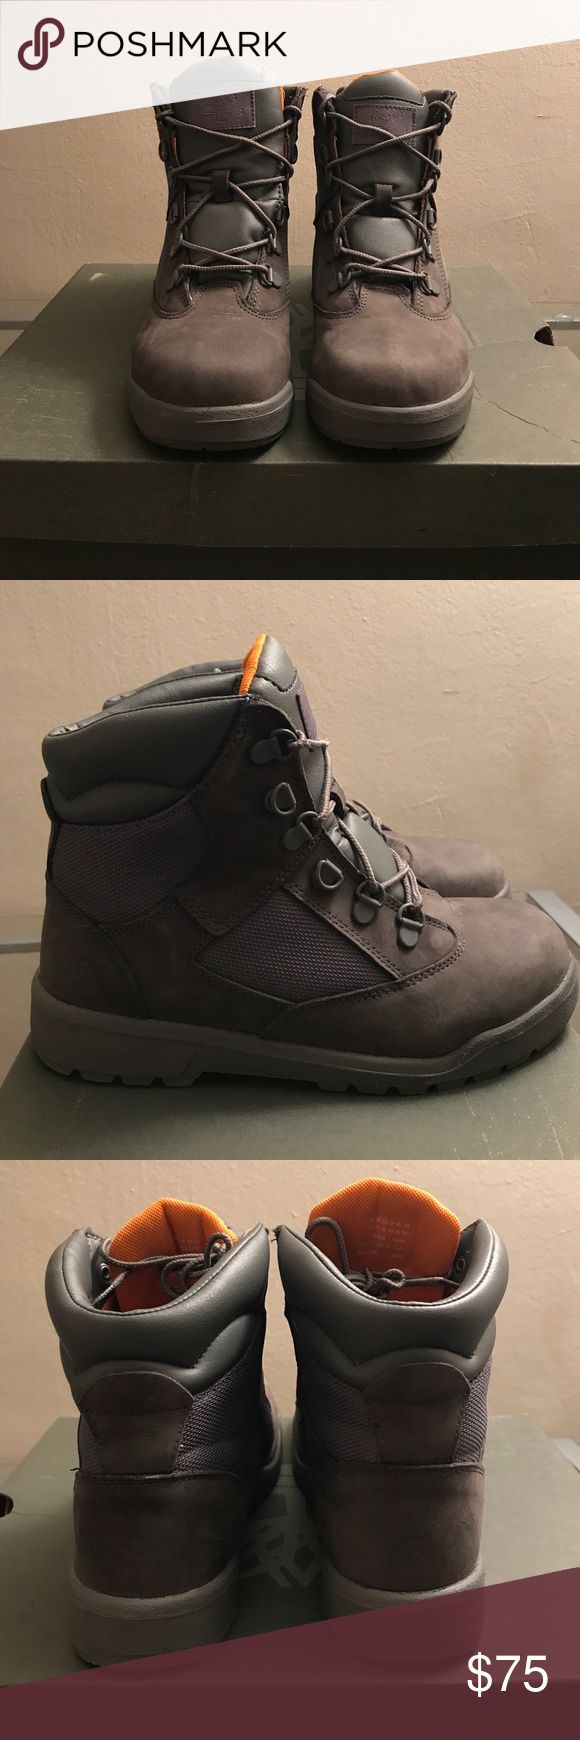 SALE! Timberland Field boots  size 7.5 6in L/F Timberland Field boots grey box included worn 1x. Equivalent to a women's size 7 1/2. (  size 5.5  big kids) Timberland Shoes Lace Up Boots